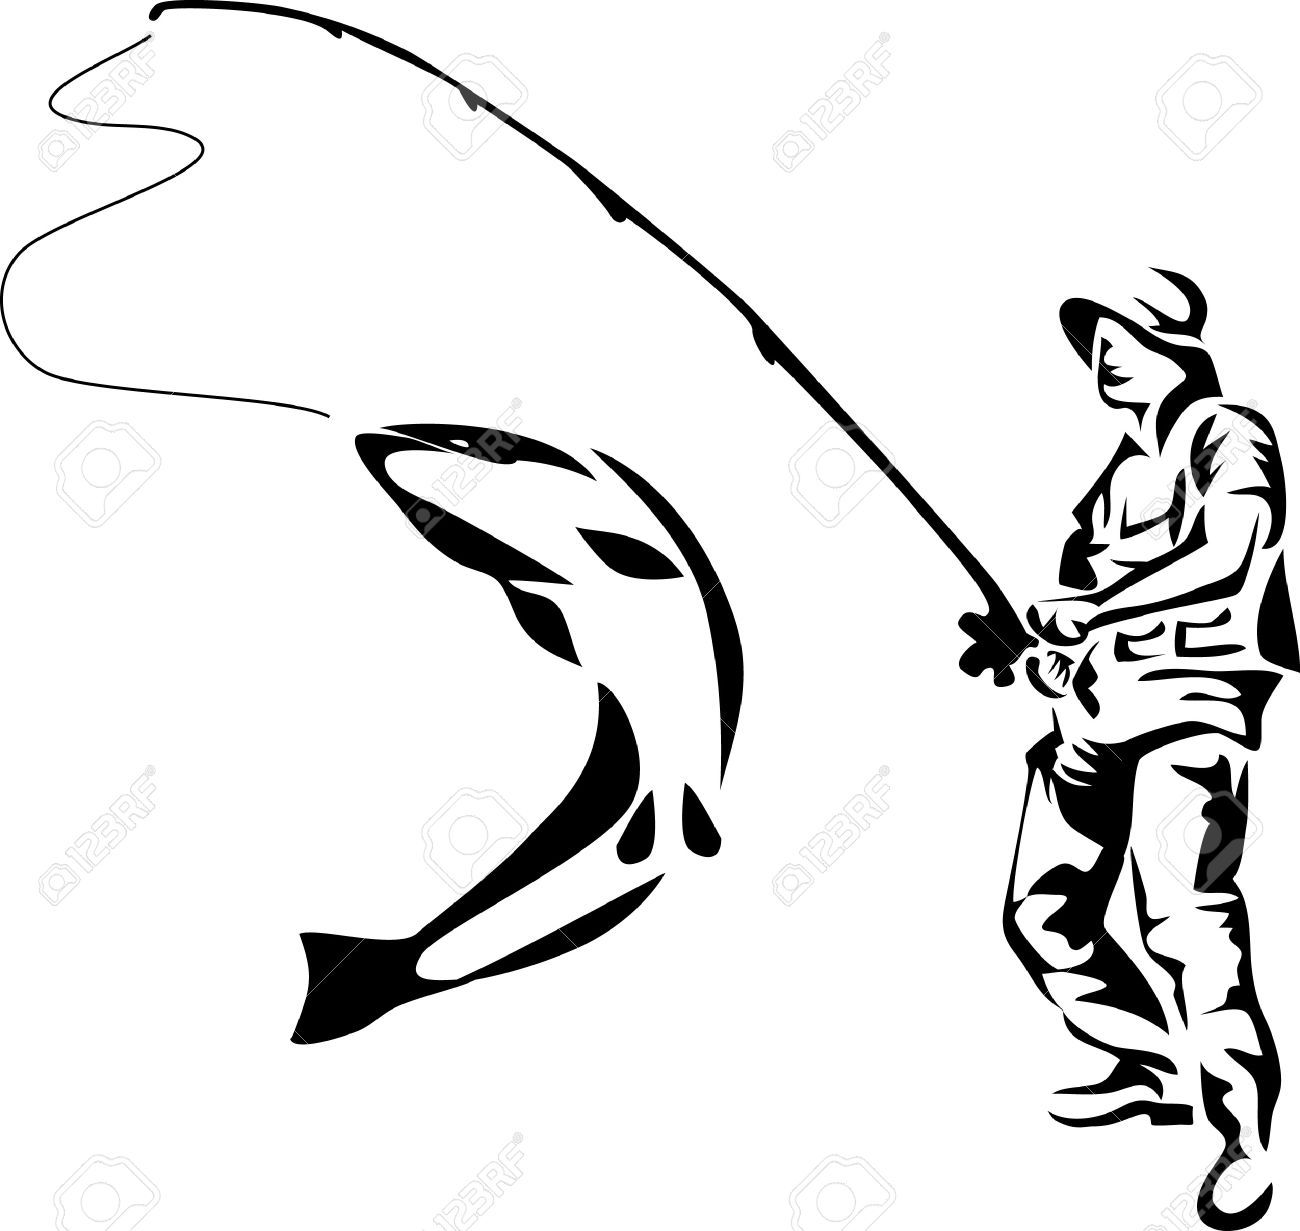 12 421 Fisherman Cliparts Stock Vector And Royalty Free Fisherman